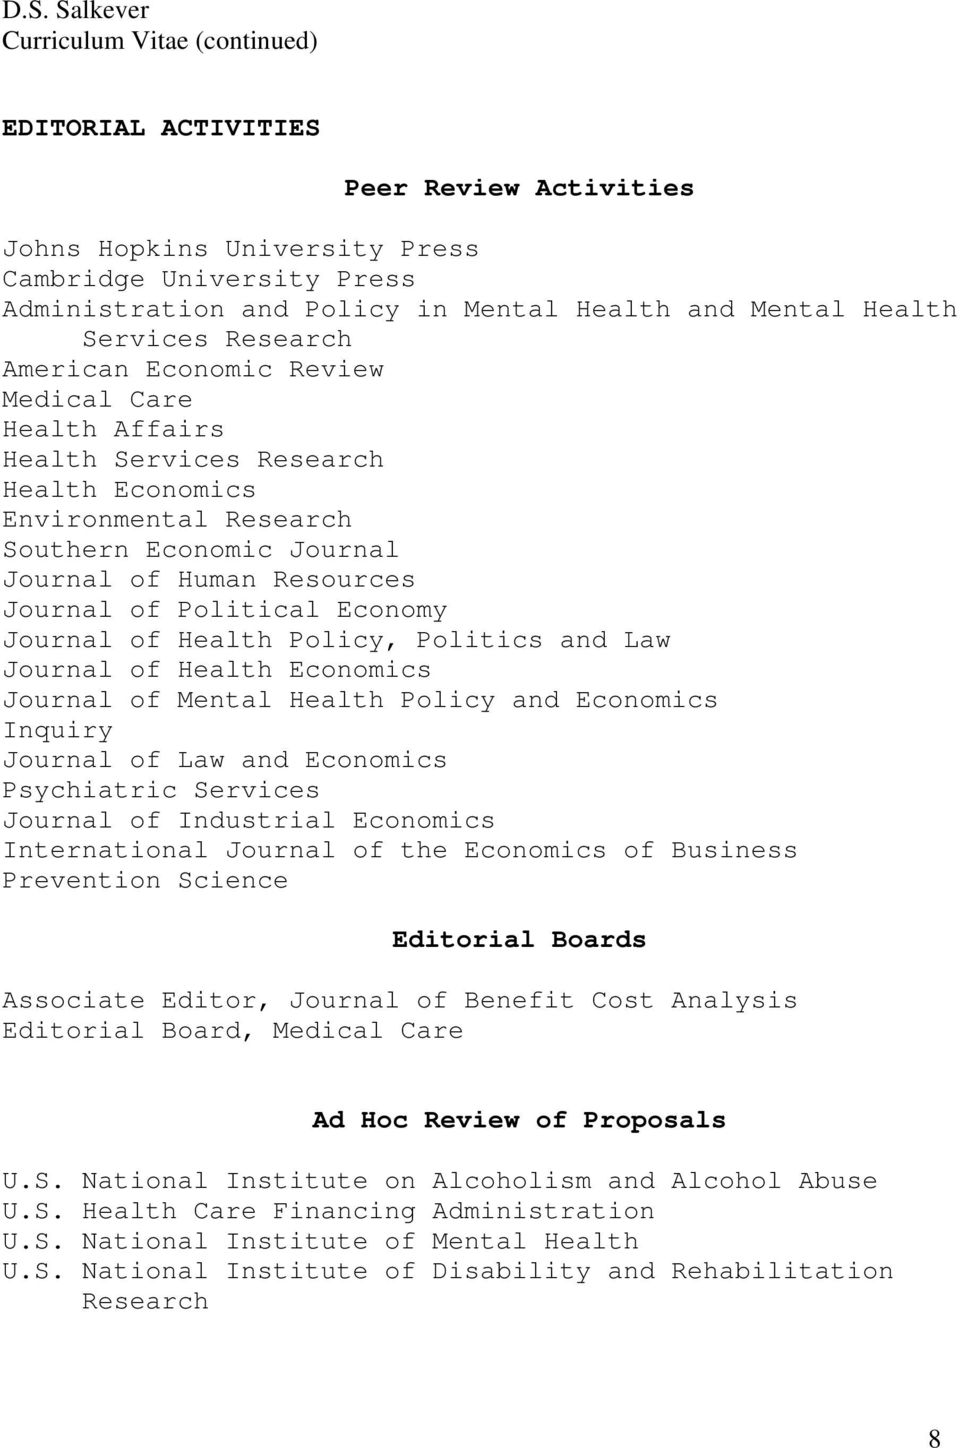 Policy, Politics and Law Journal of Health Economics Journal of Mental Health Policy and Economics Inquiry Journal of Law and Economics Psychiatric Services Journal of Industrial Economics